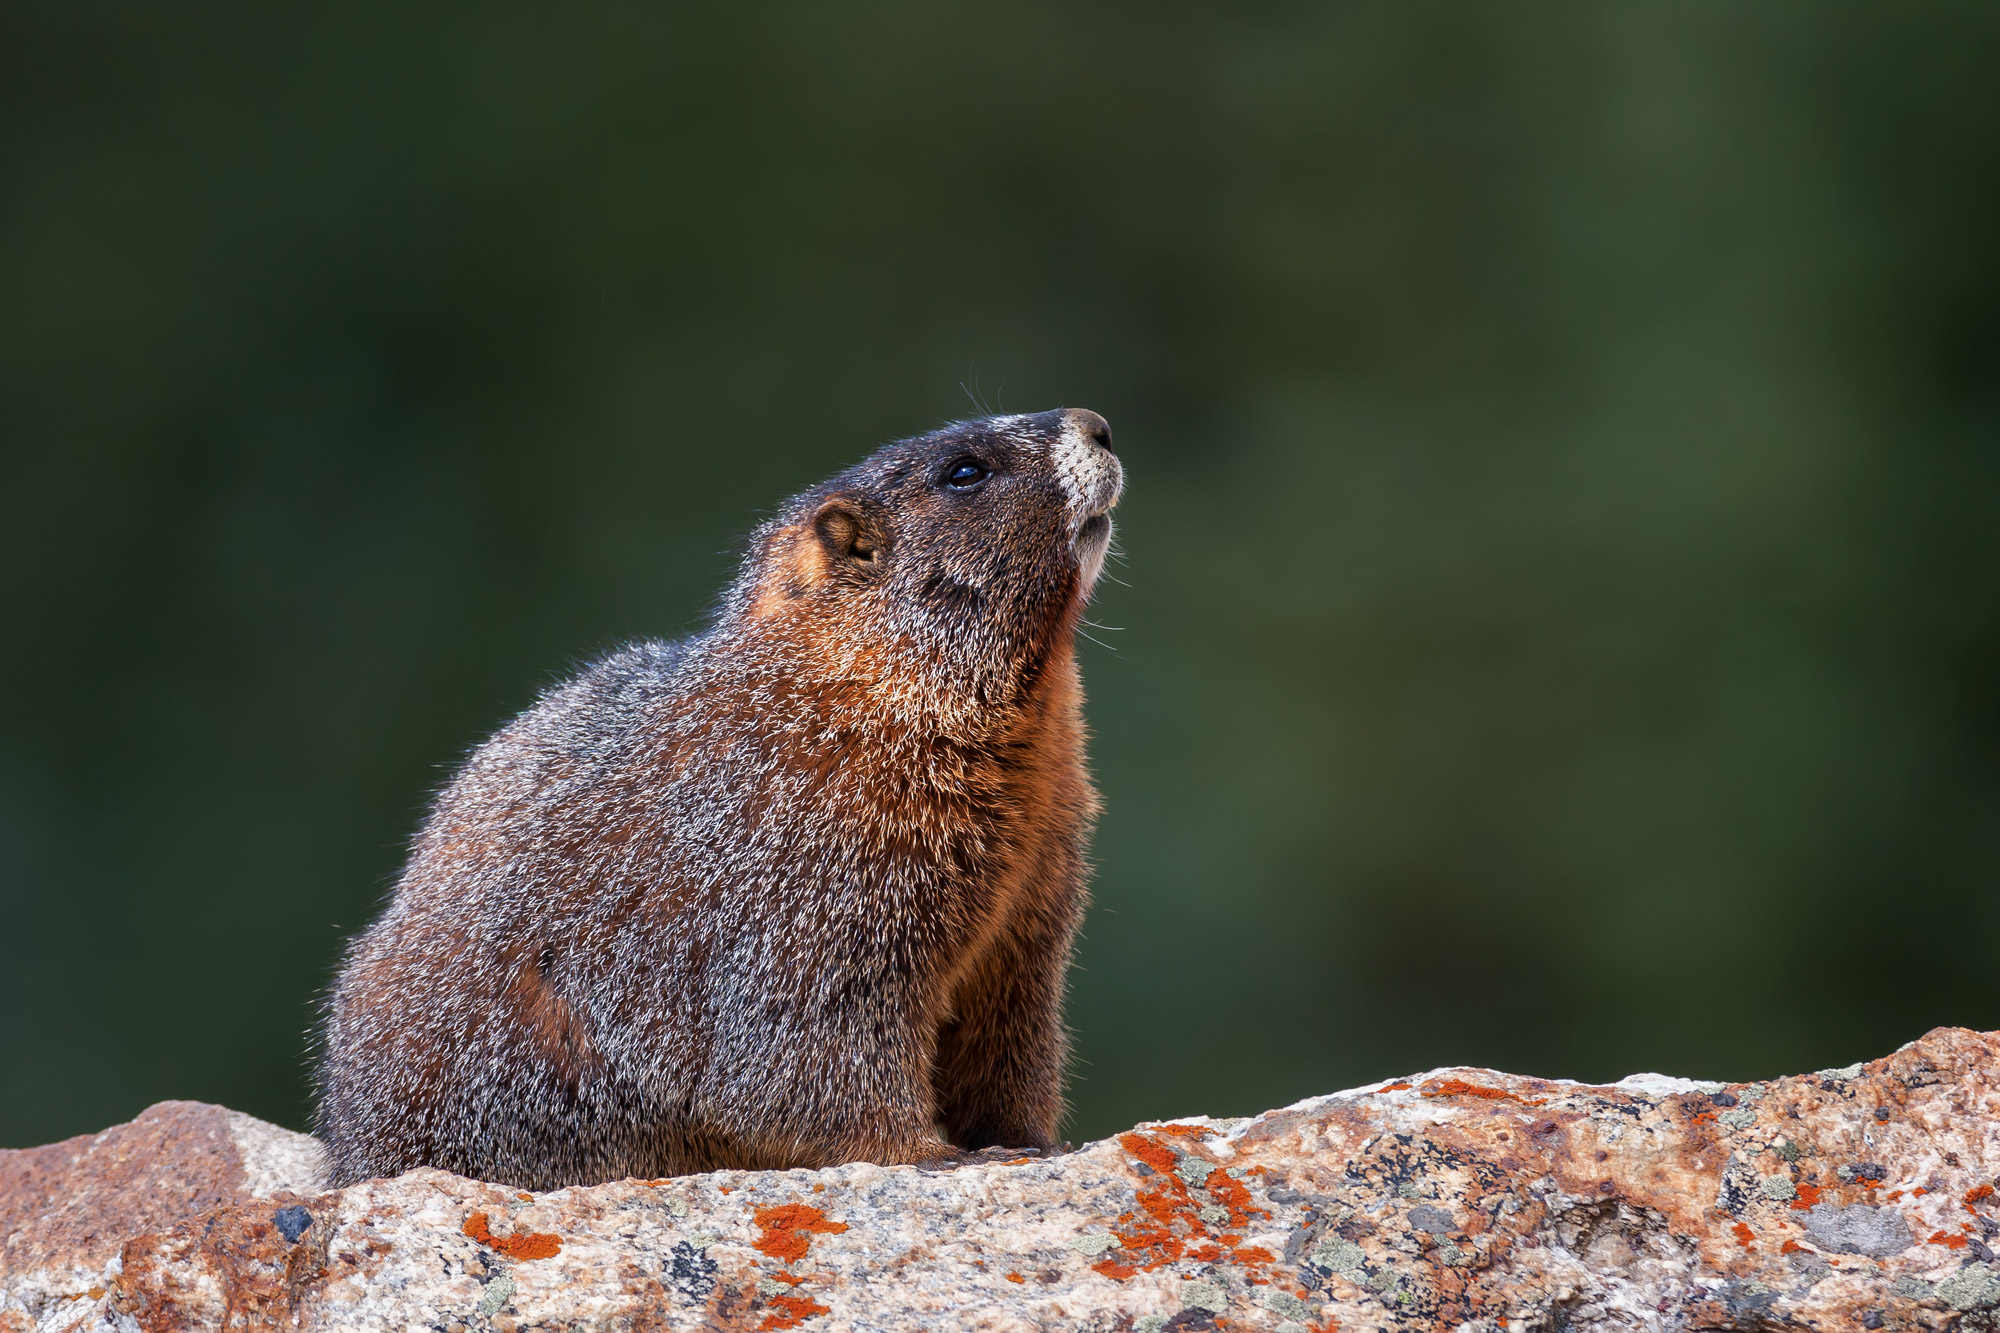 Marmot Fine Art Photography A Limited Edition photograph of a Marmot on a rock looking up to unknow objects at Rocky Mountain...